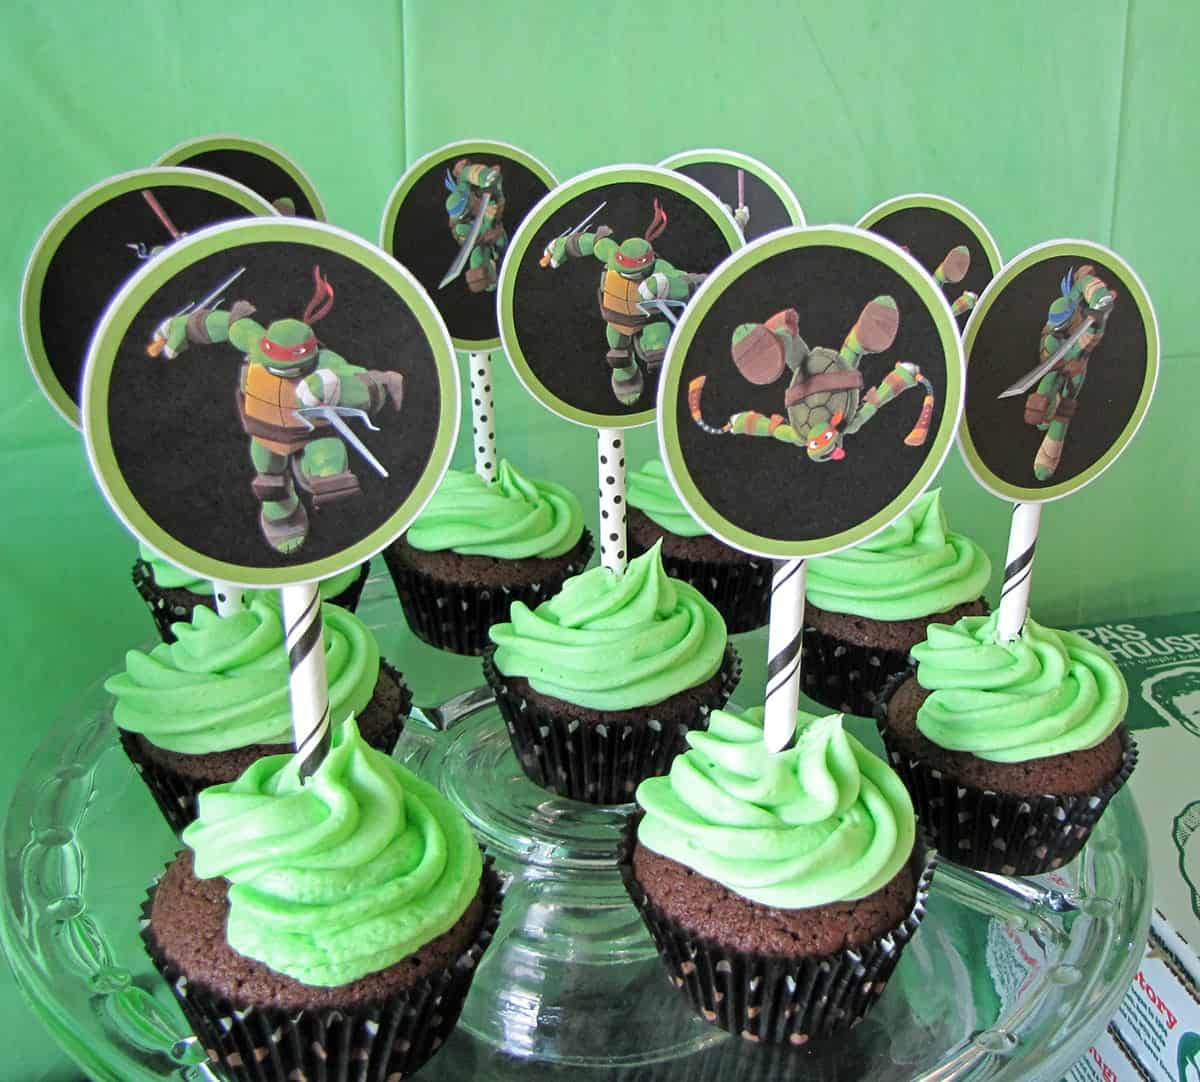 Ninja Turtle Cupcakes-chocolate cupcakes with bright green icing and ninja turtle cupcake toppers on glass serving tray.